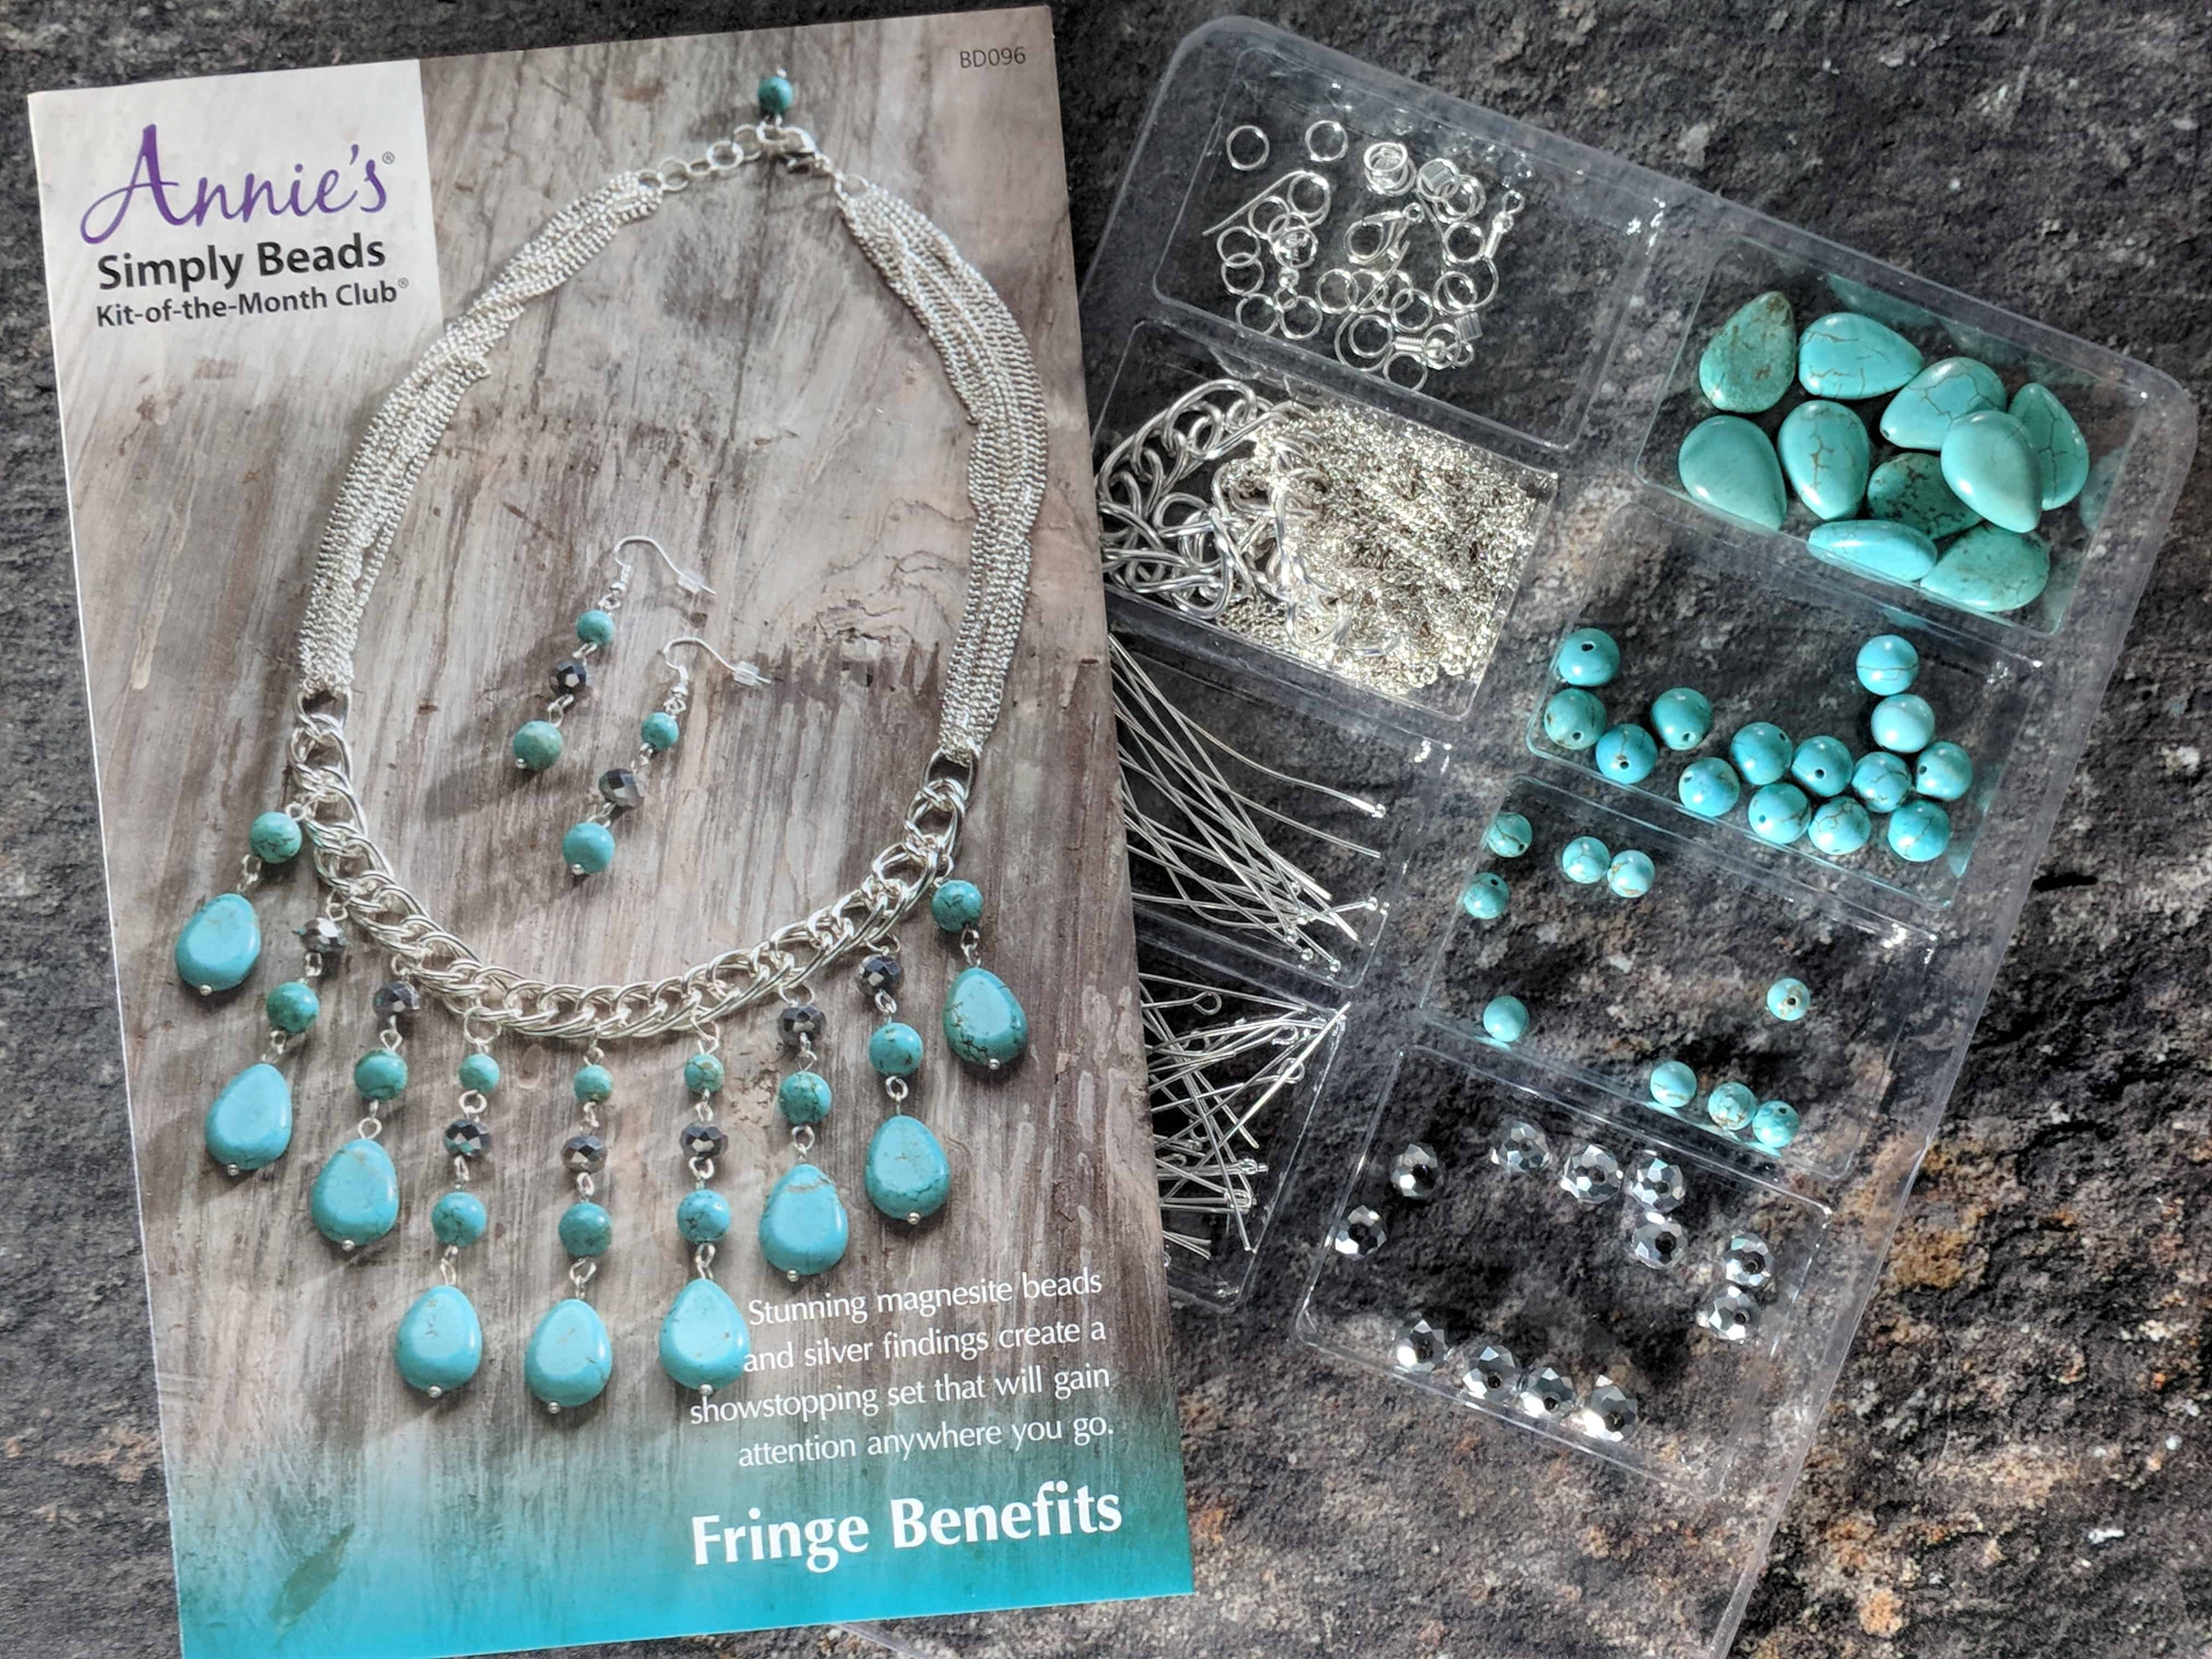 Annie's Simply Beads Kit-of-the-Month Club Subscription Box Review – November 2017